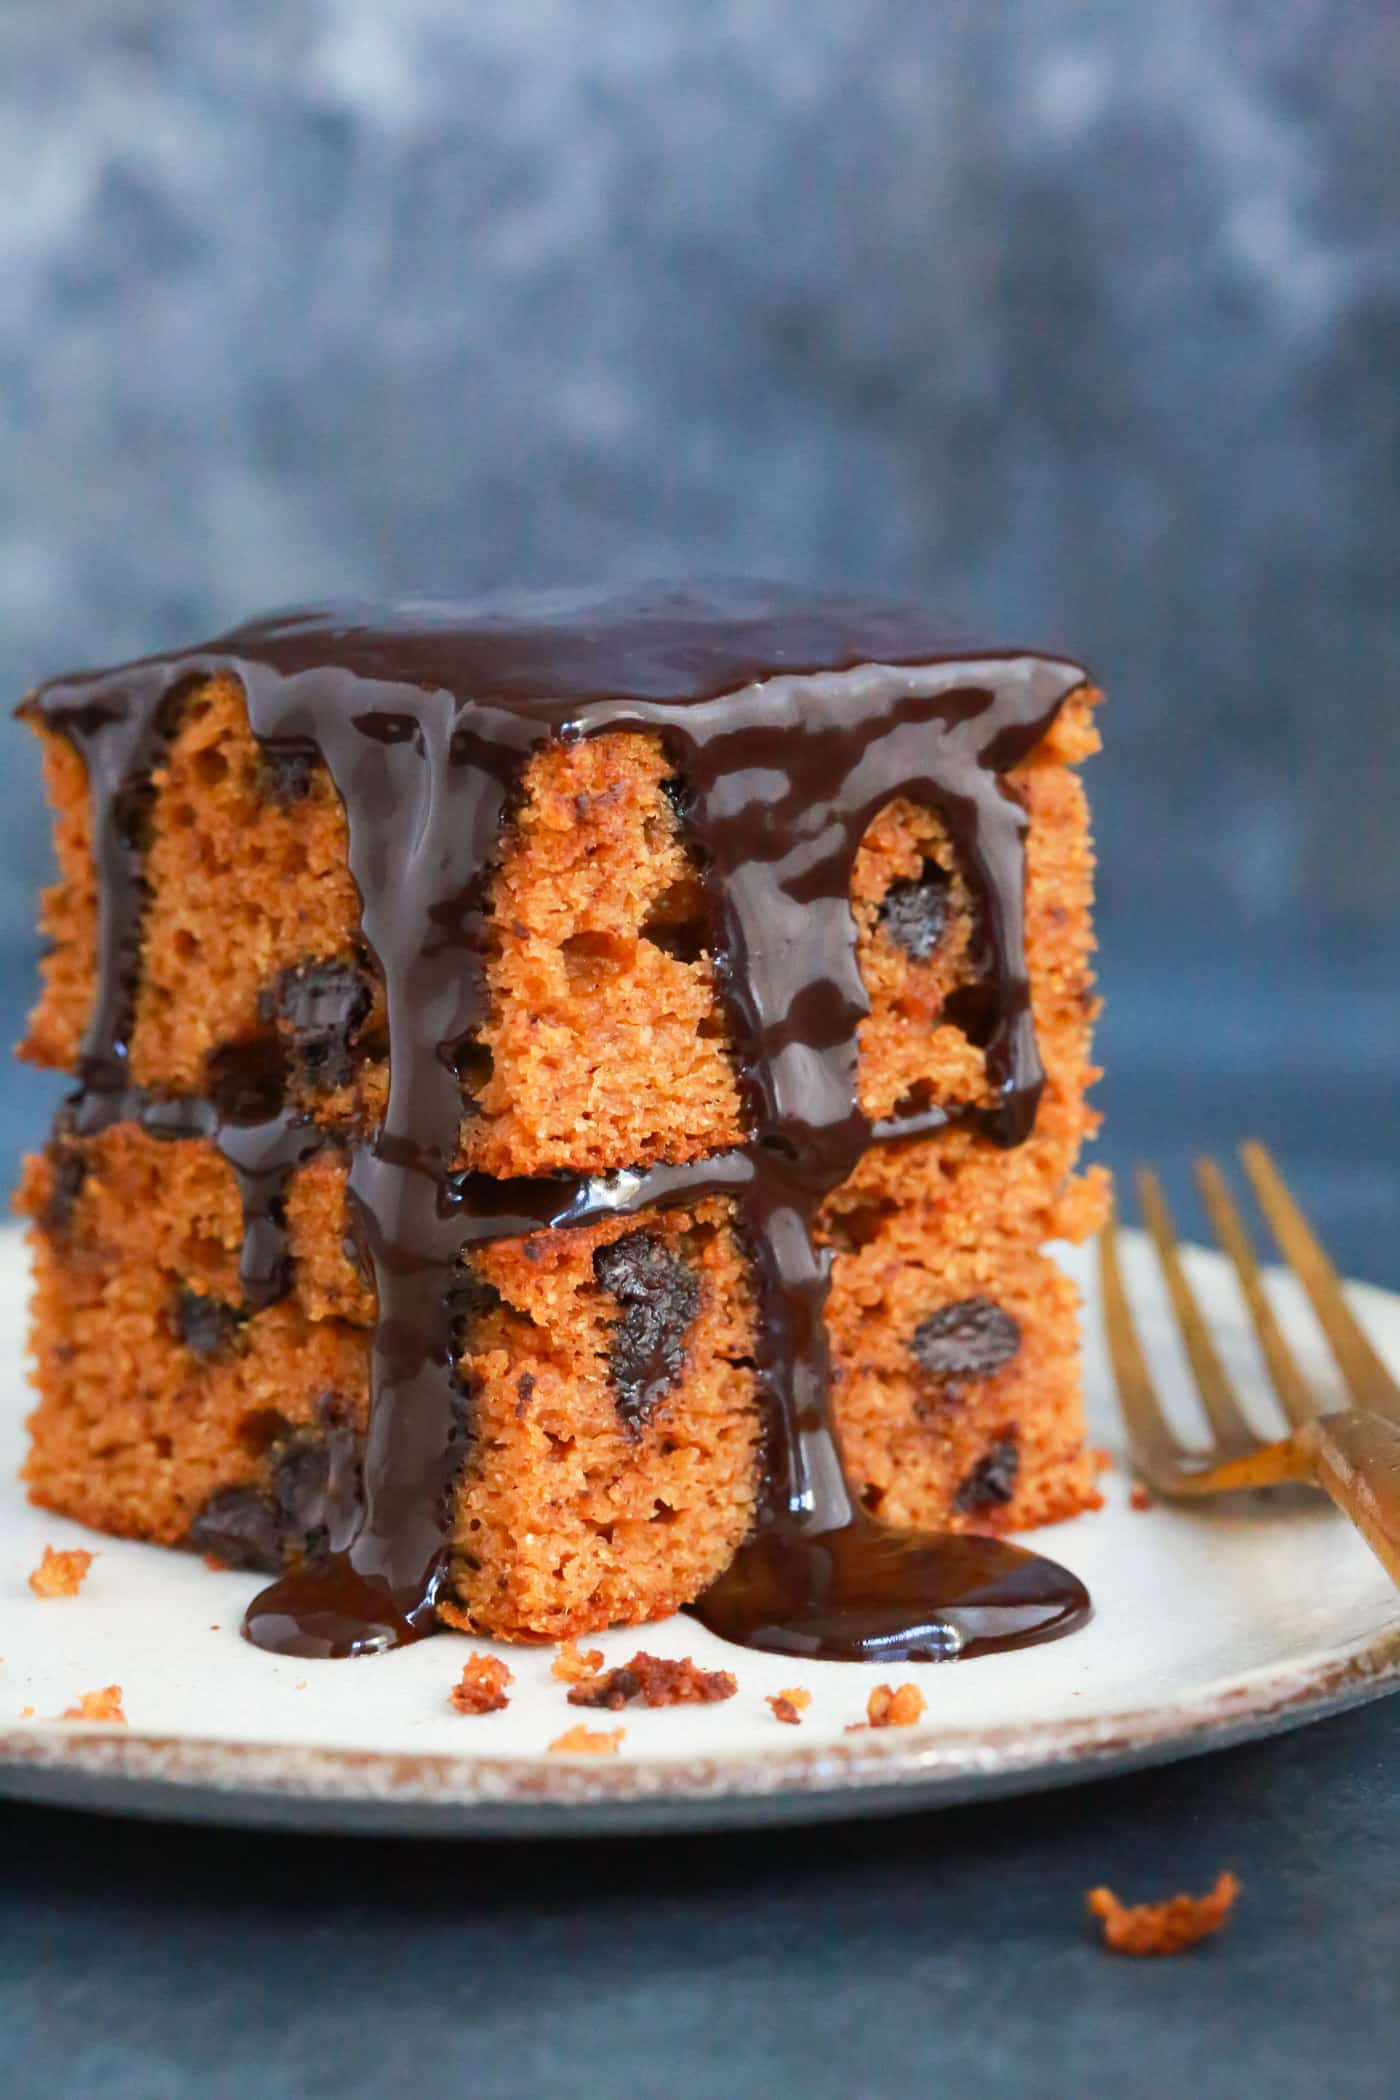 You'll never believe that this super moist and rich paleo chocolate pumpkin cake is actually healthy. It's gluten-free and made with peanut butter, almond flour, pumpkin puree and coconut milk.